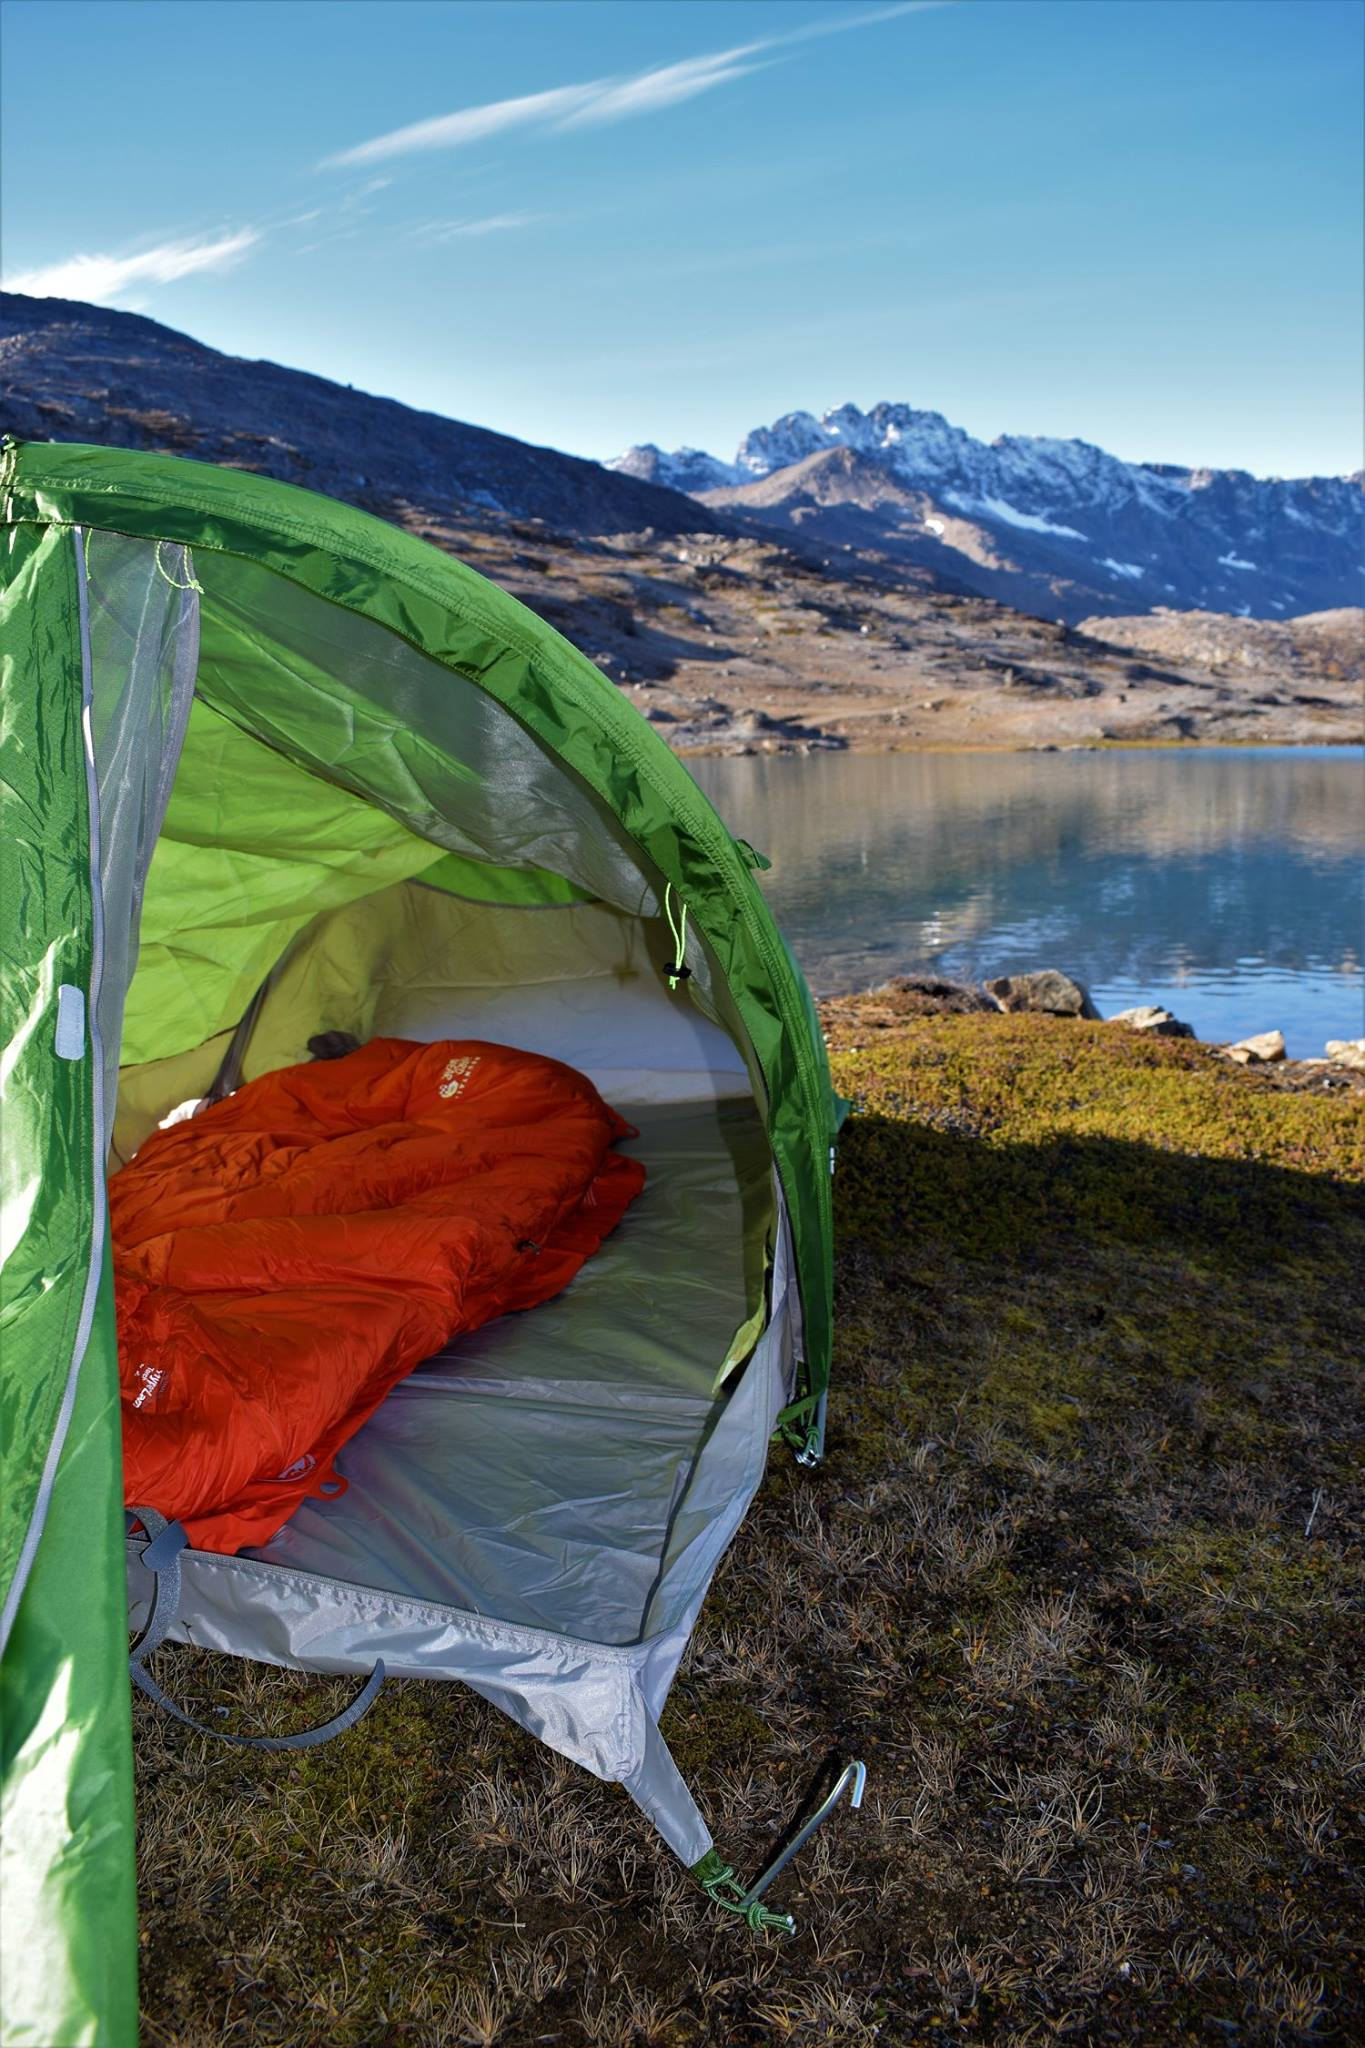 Look to the inner tent and view over lake